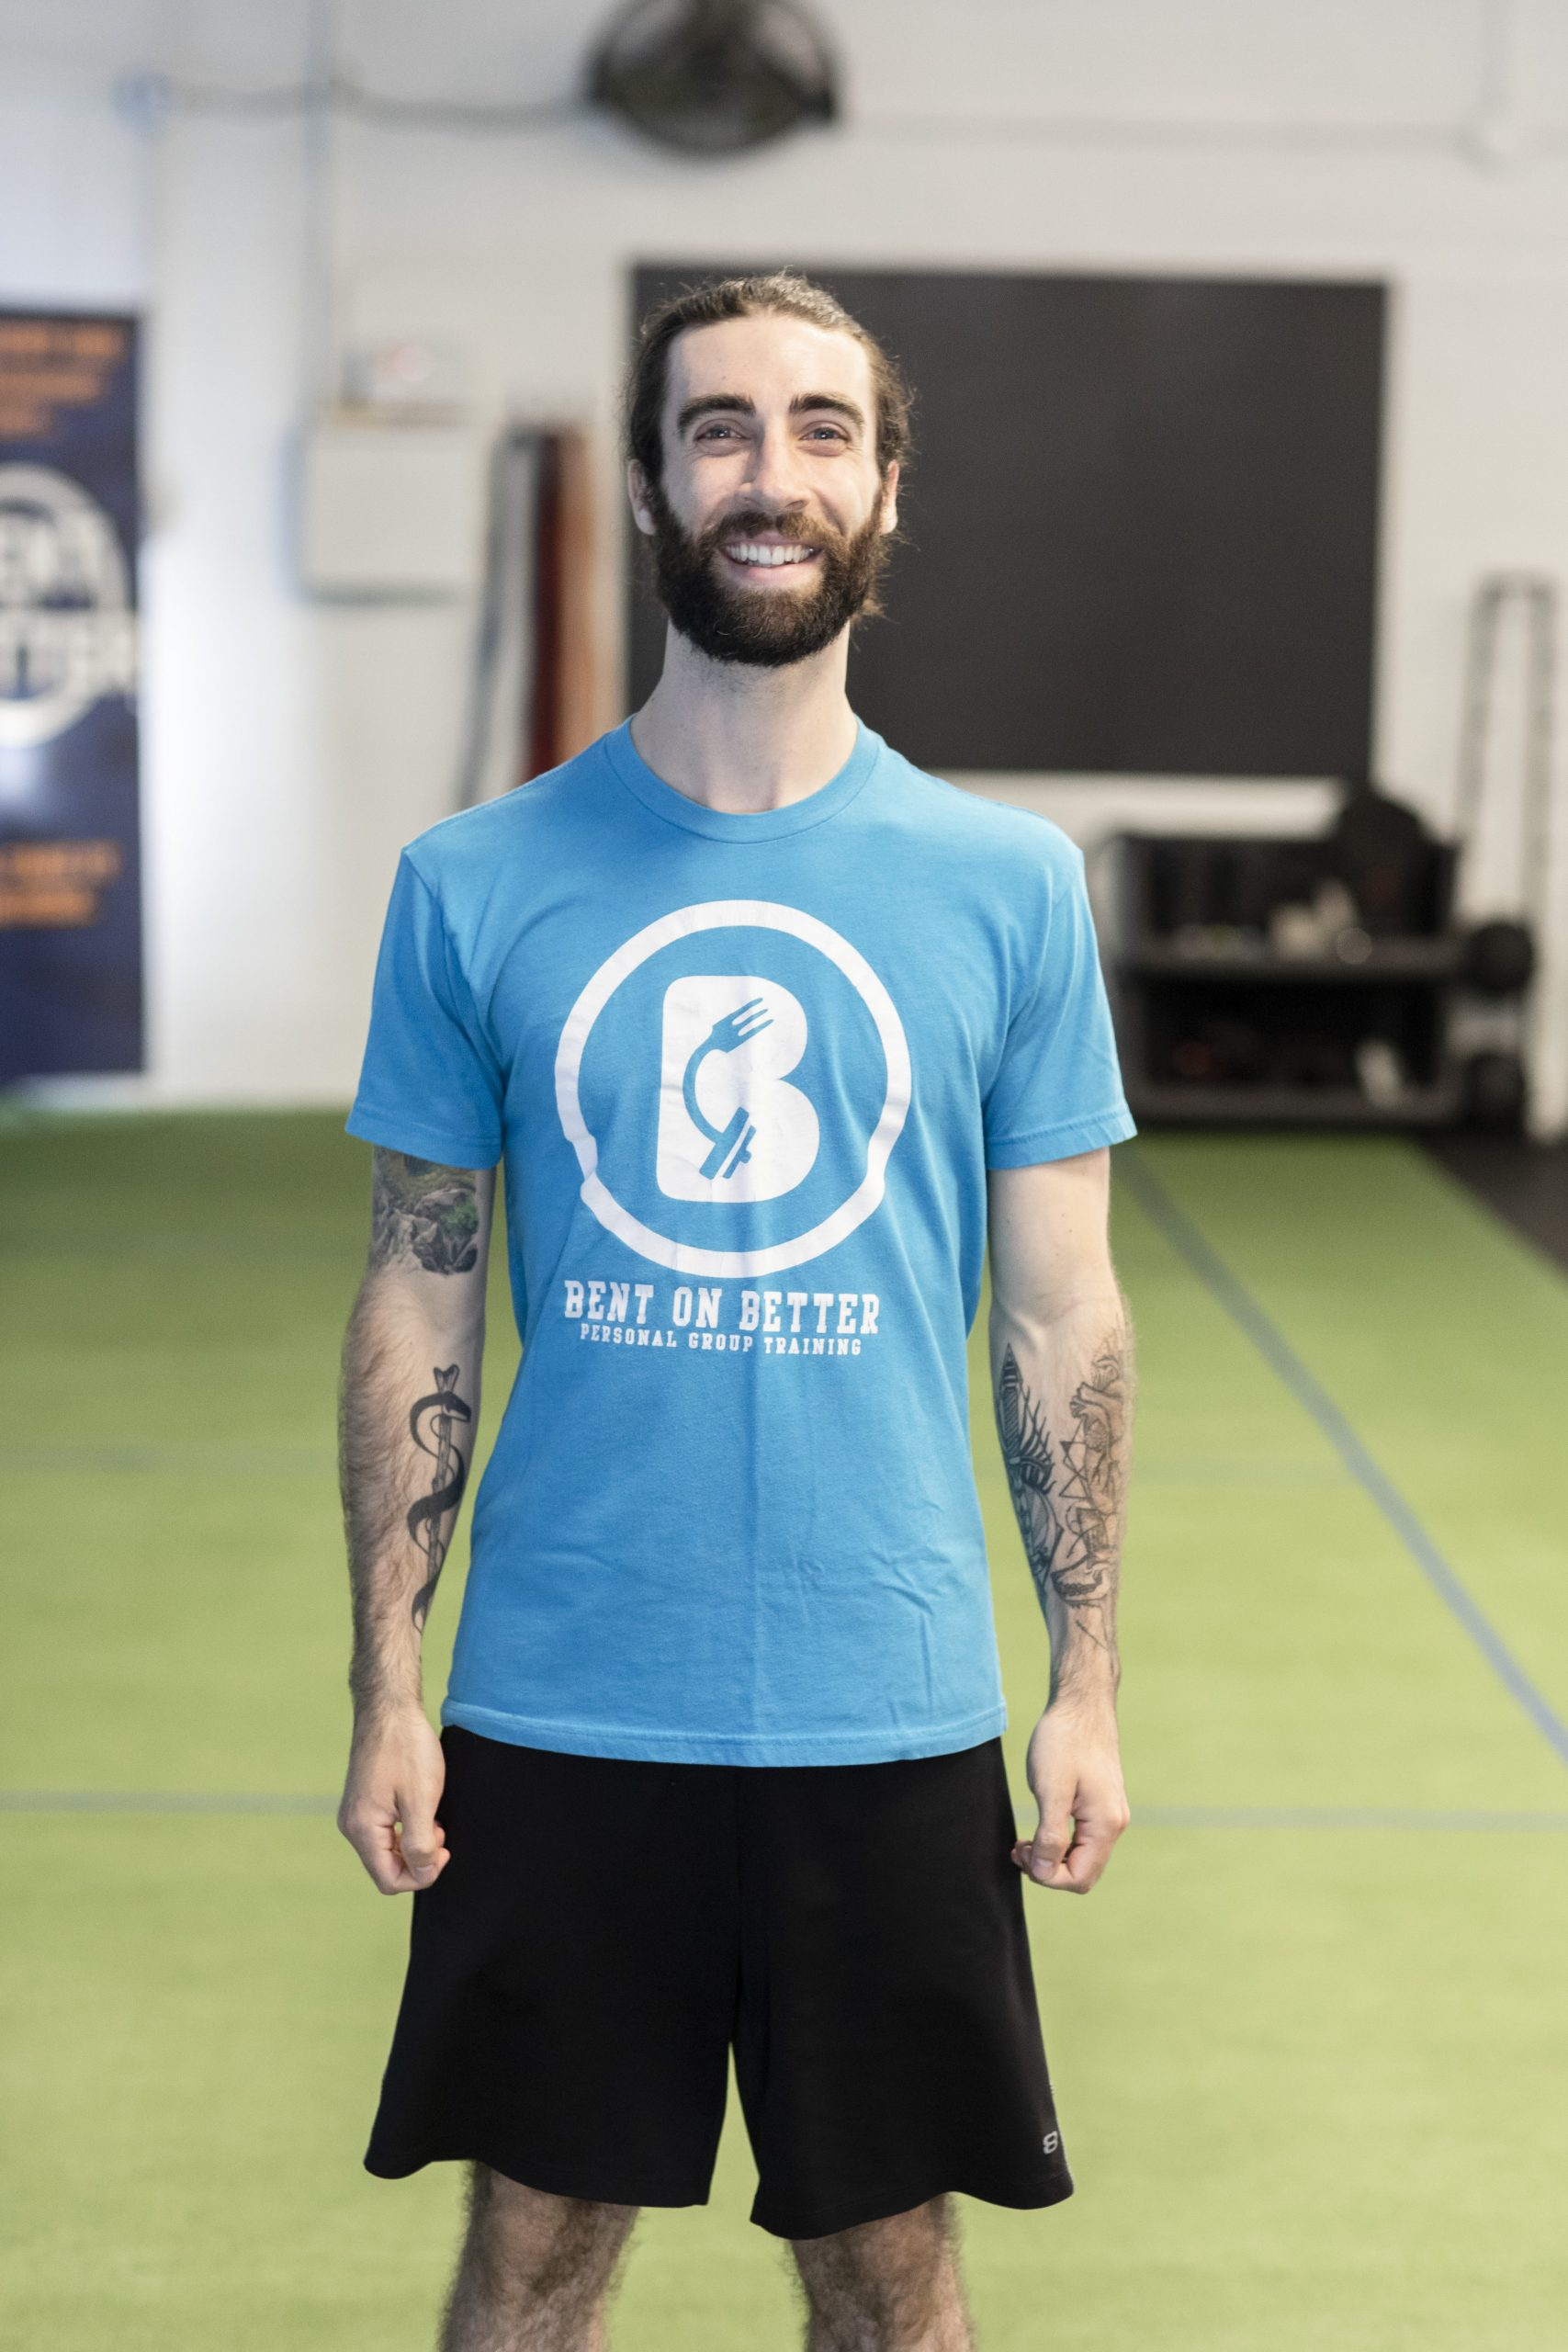 gyms in west chester- Bent On Better - personal trainers- Nick April